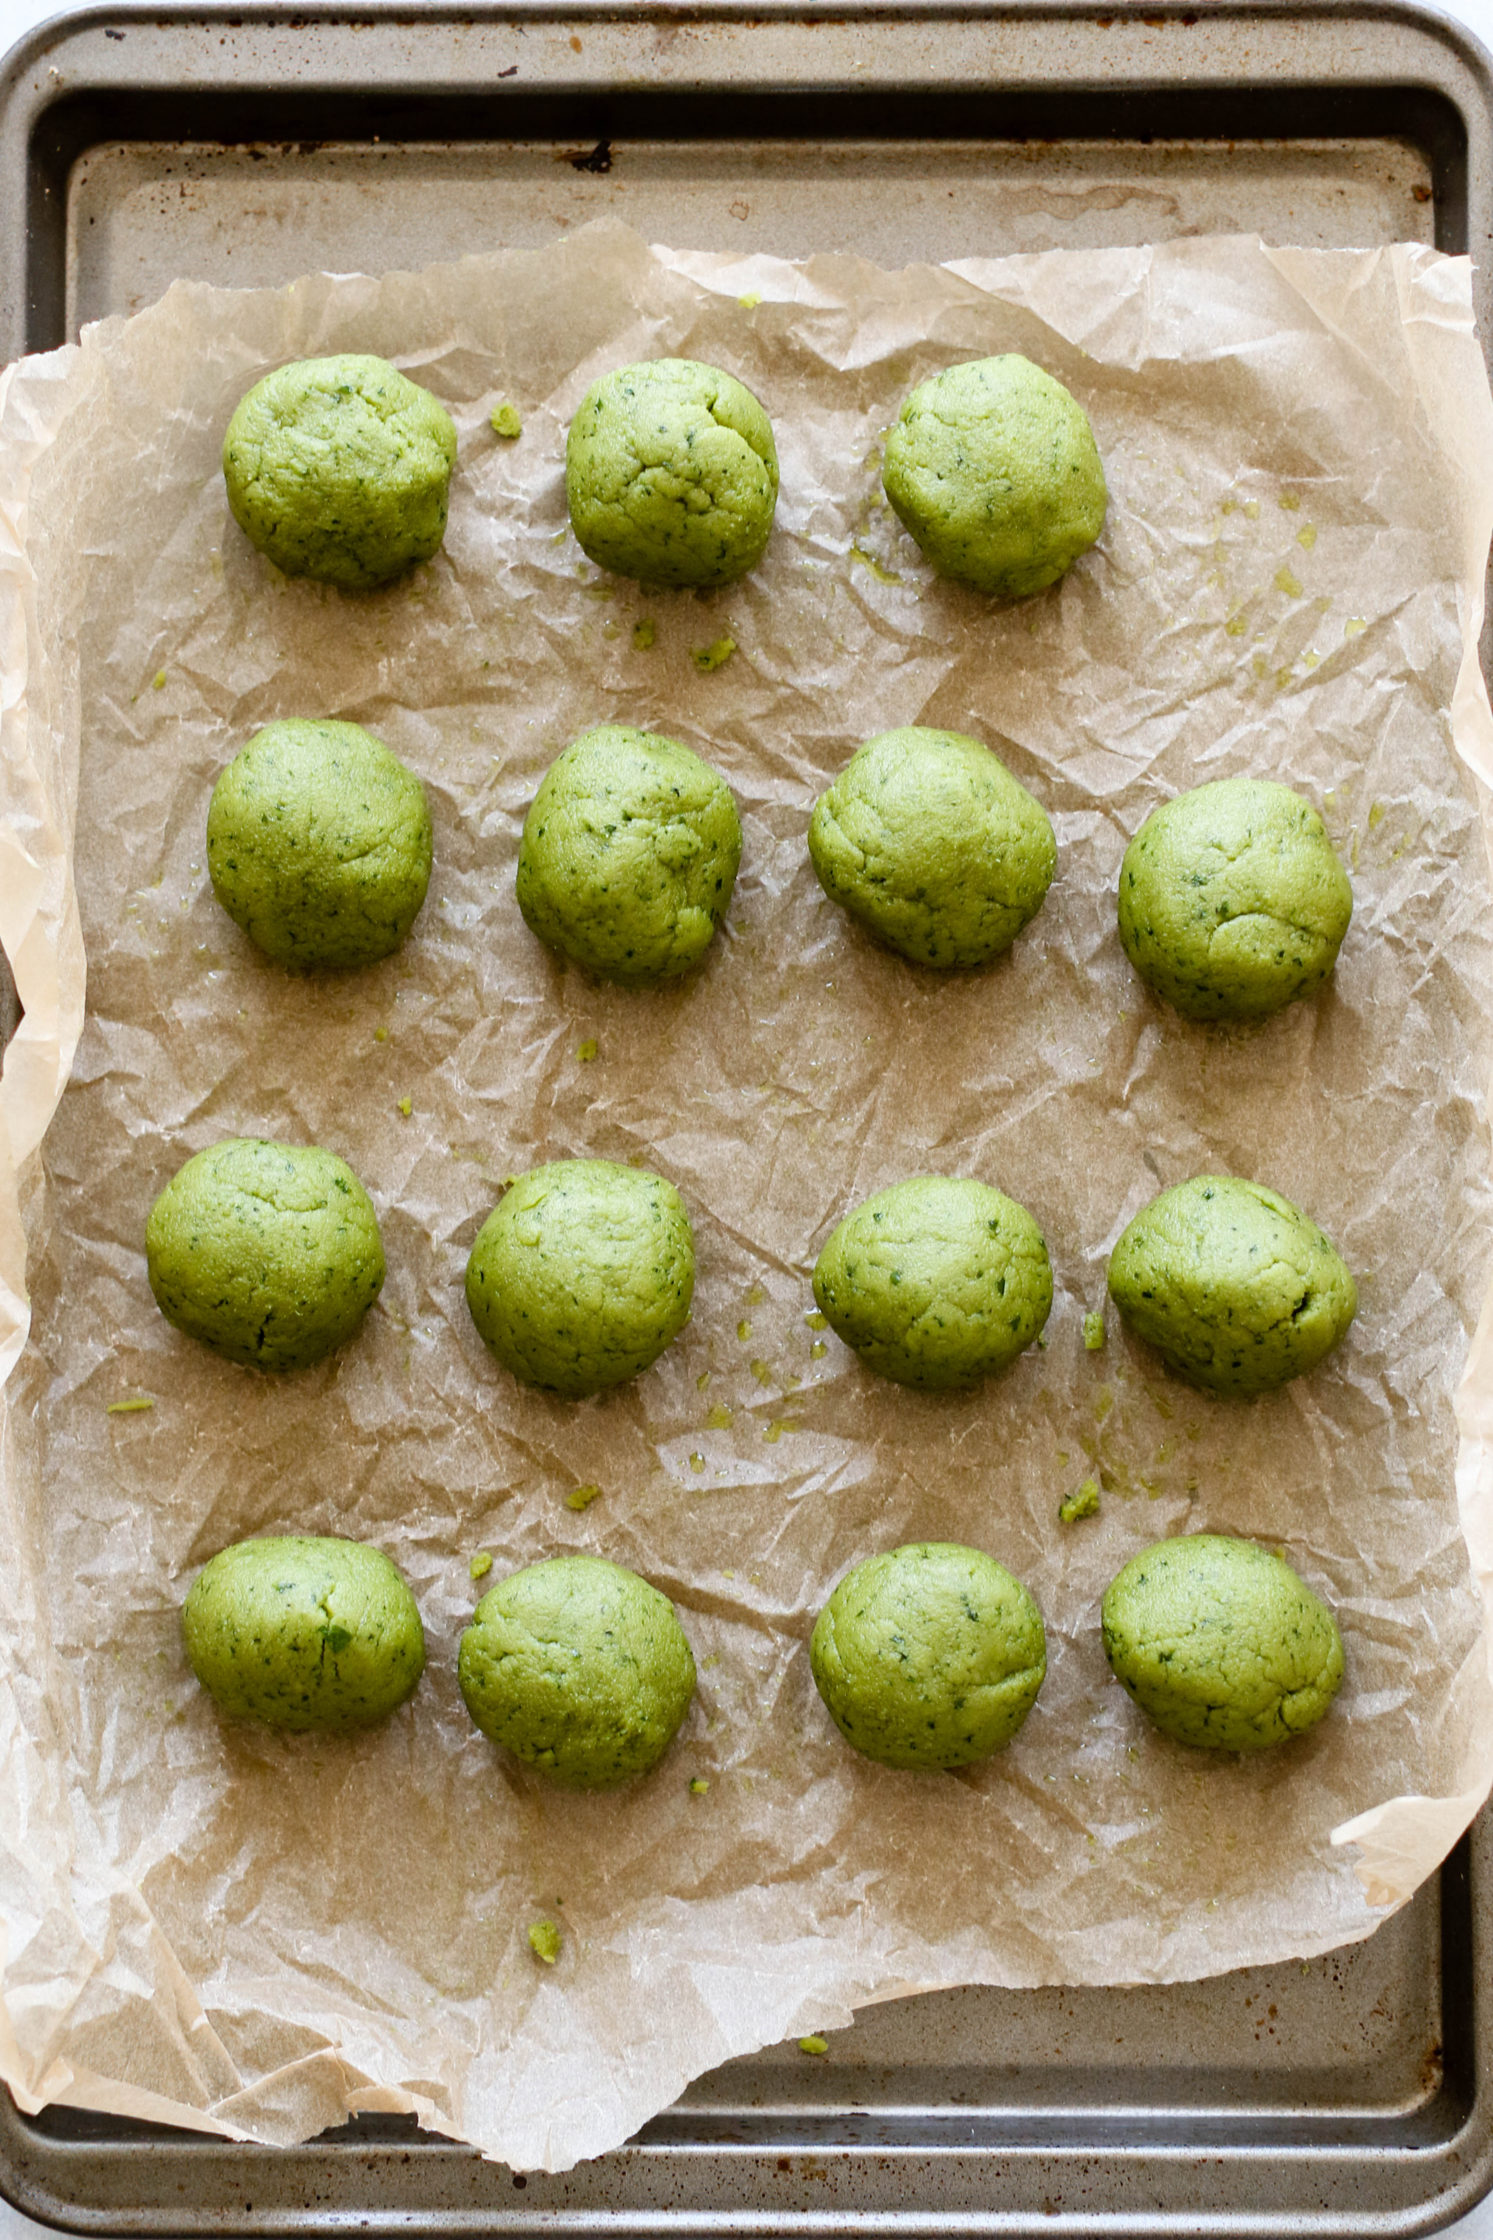 Super Green Fat Balls by Flora & Vino